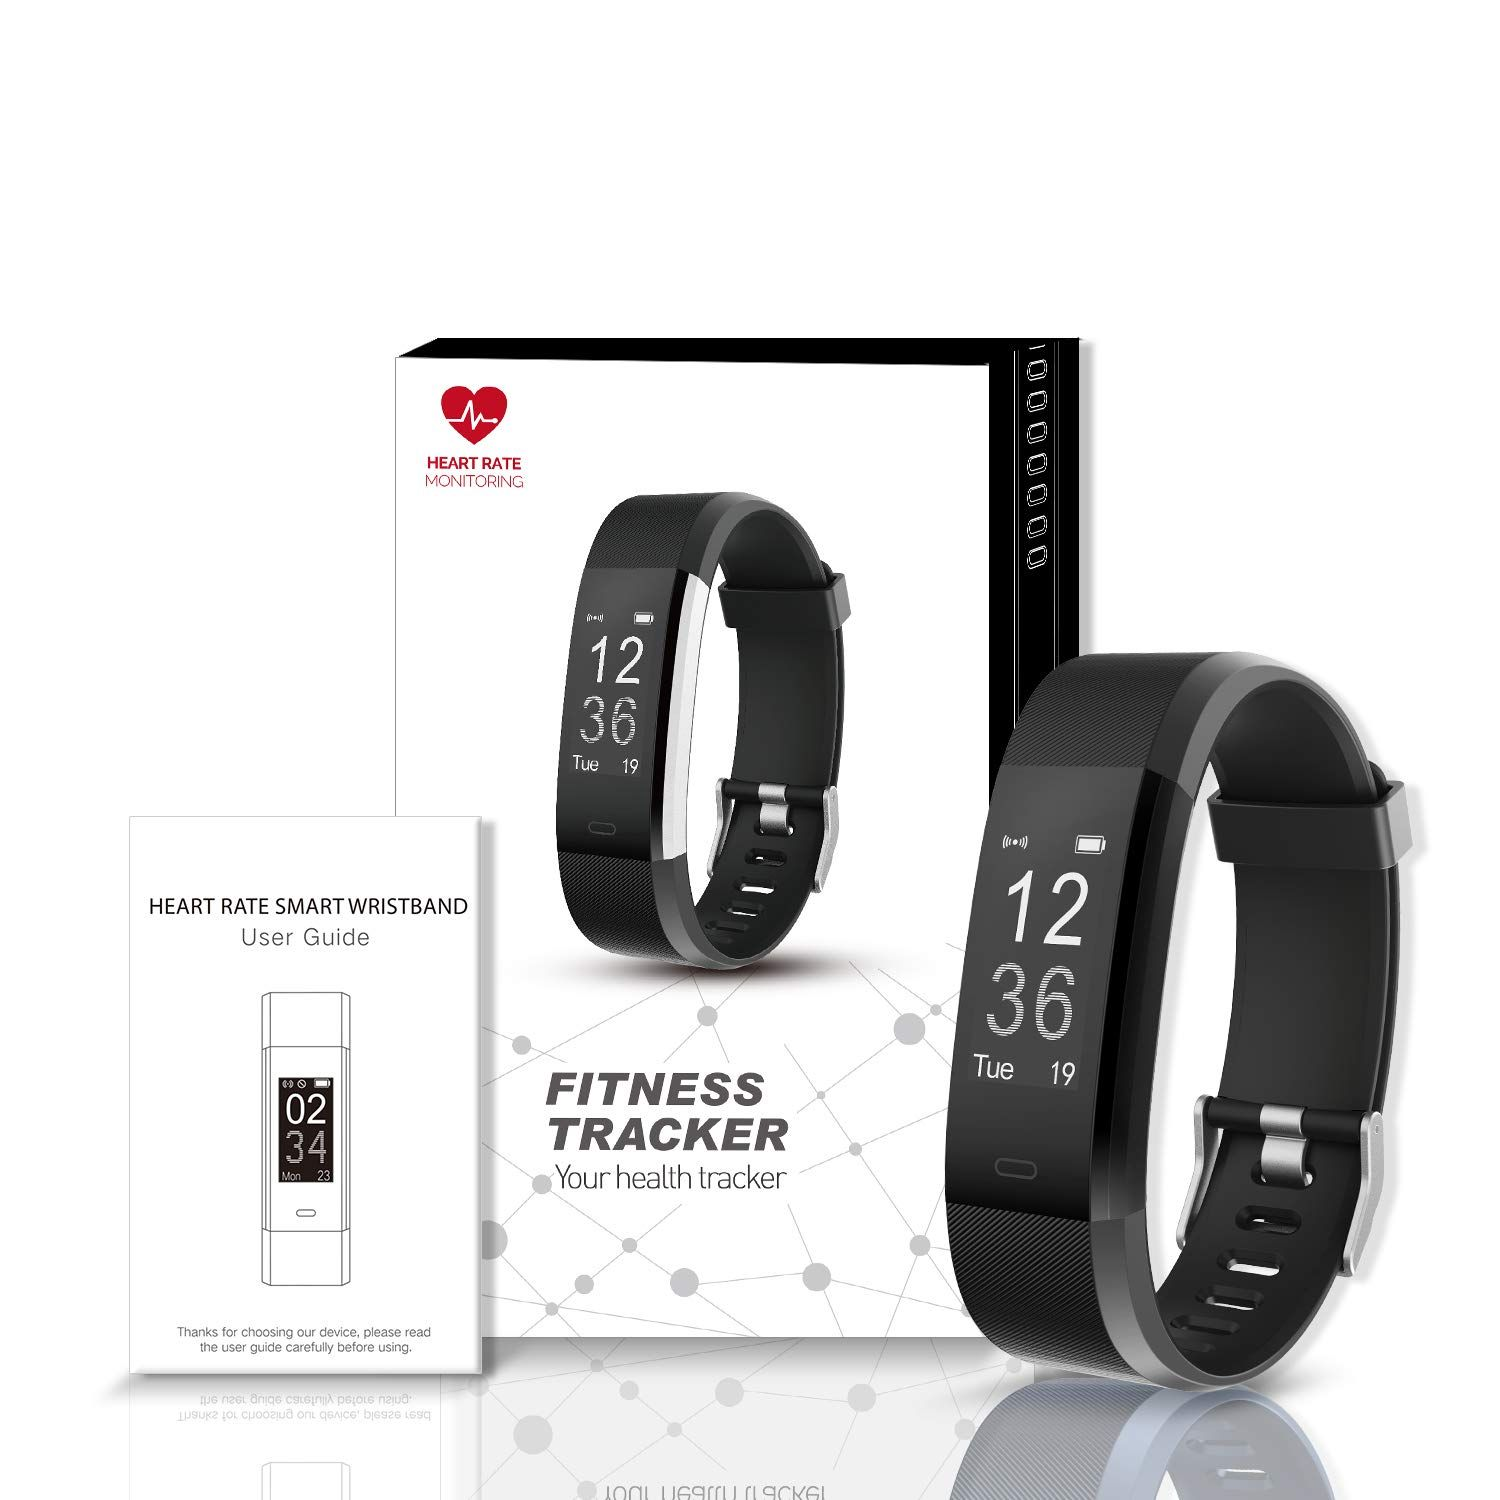 8595237b48a Arbily Fitness Tracker Activity Tracker Watch with Heart Rate Monitor  Waterproof Smart Wristband with Pedometer Calorie